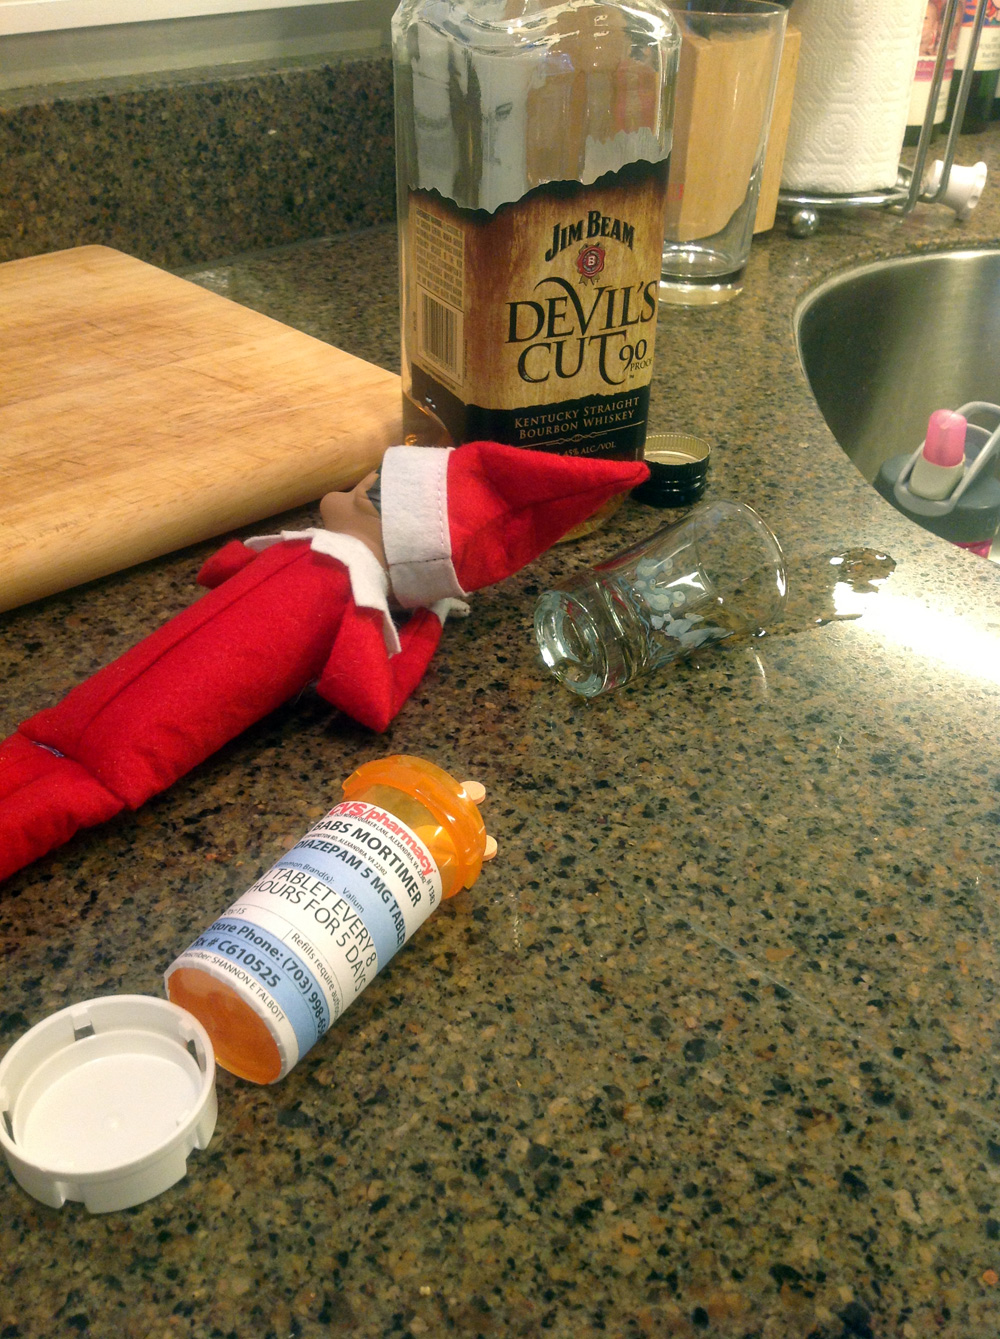 Elf On The Shelf Ideas 2020 20 Hilarious Photos Of The Elf On The Shelf Being Very Naughty